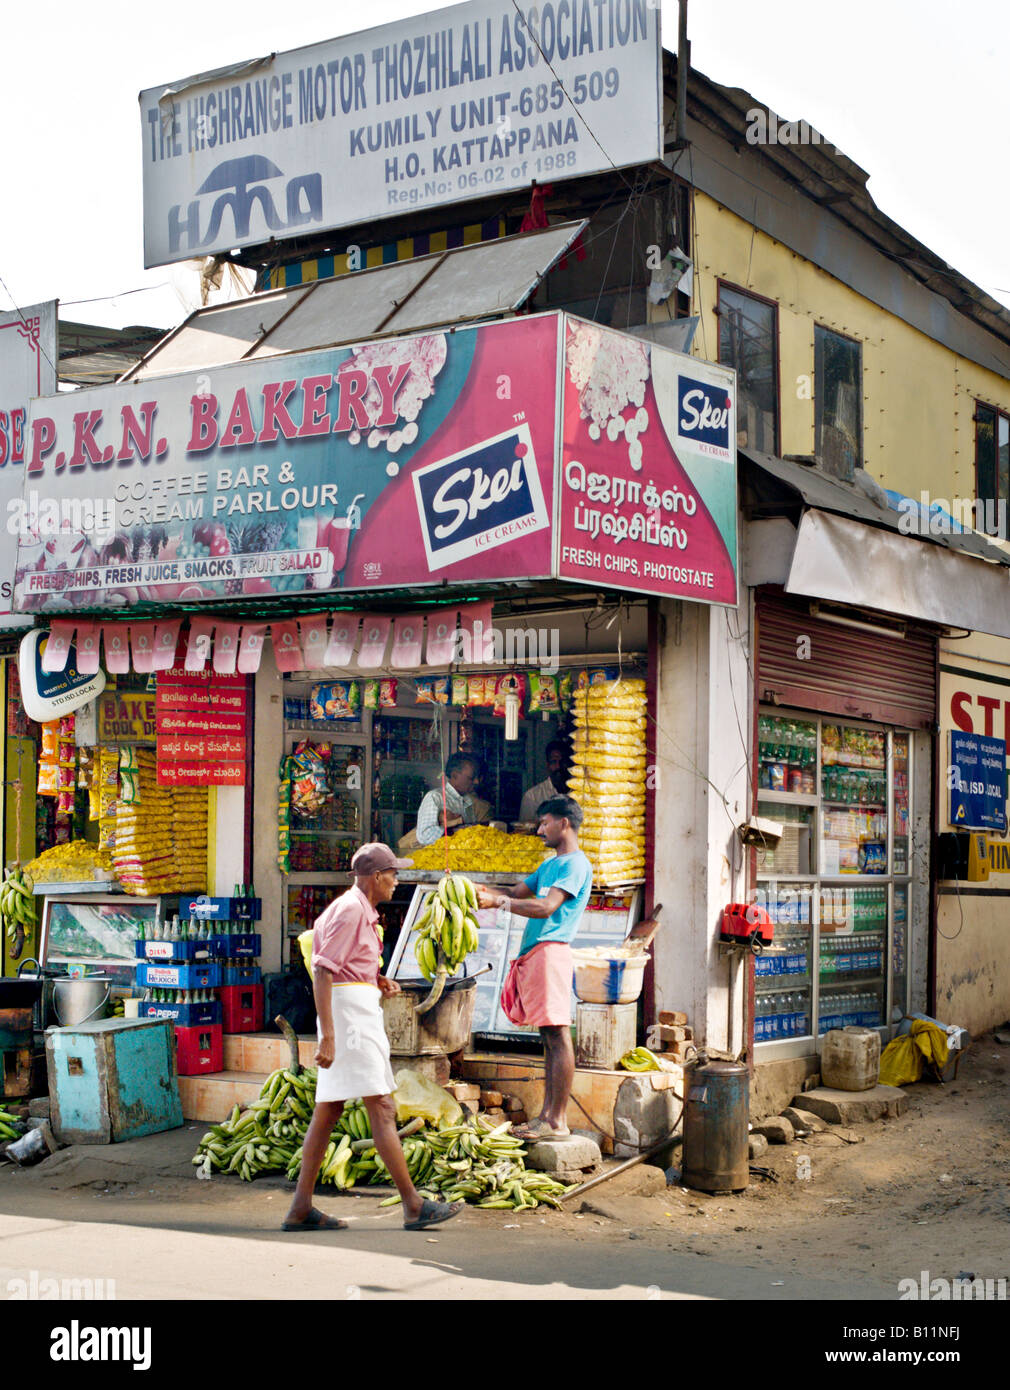 Bakery Shop India High Resolution Stock Photography And Images Alamy